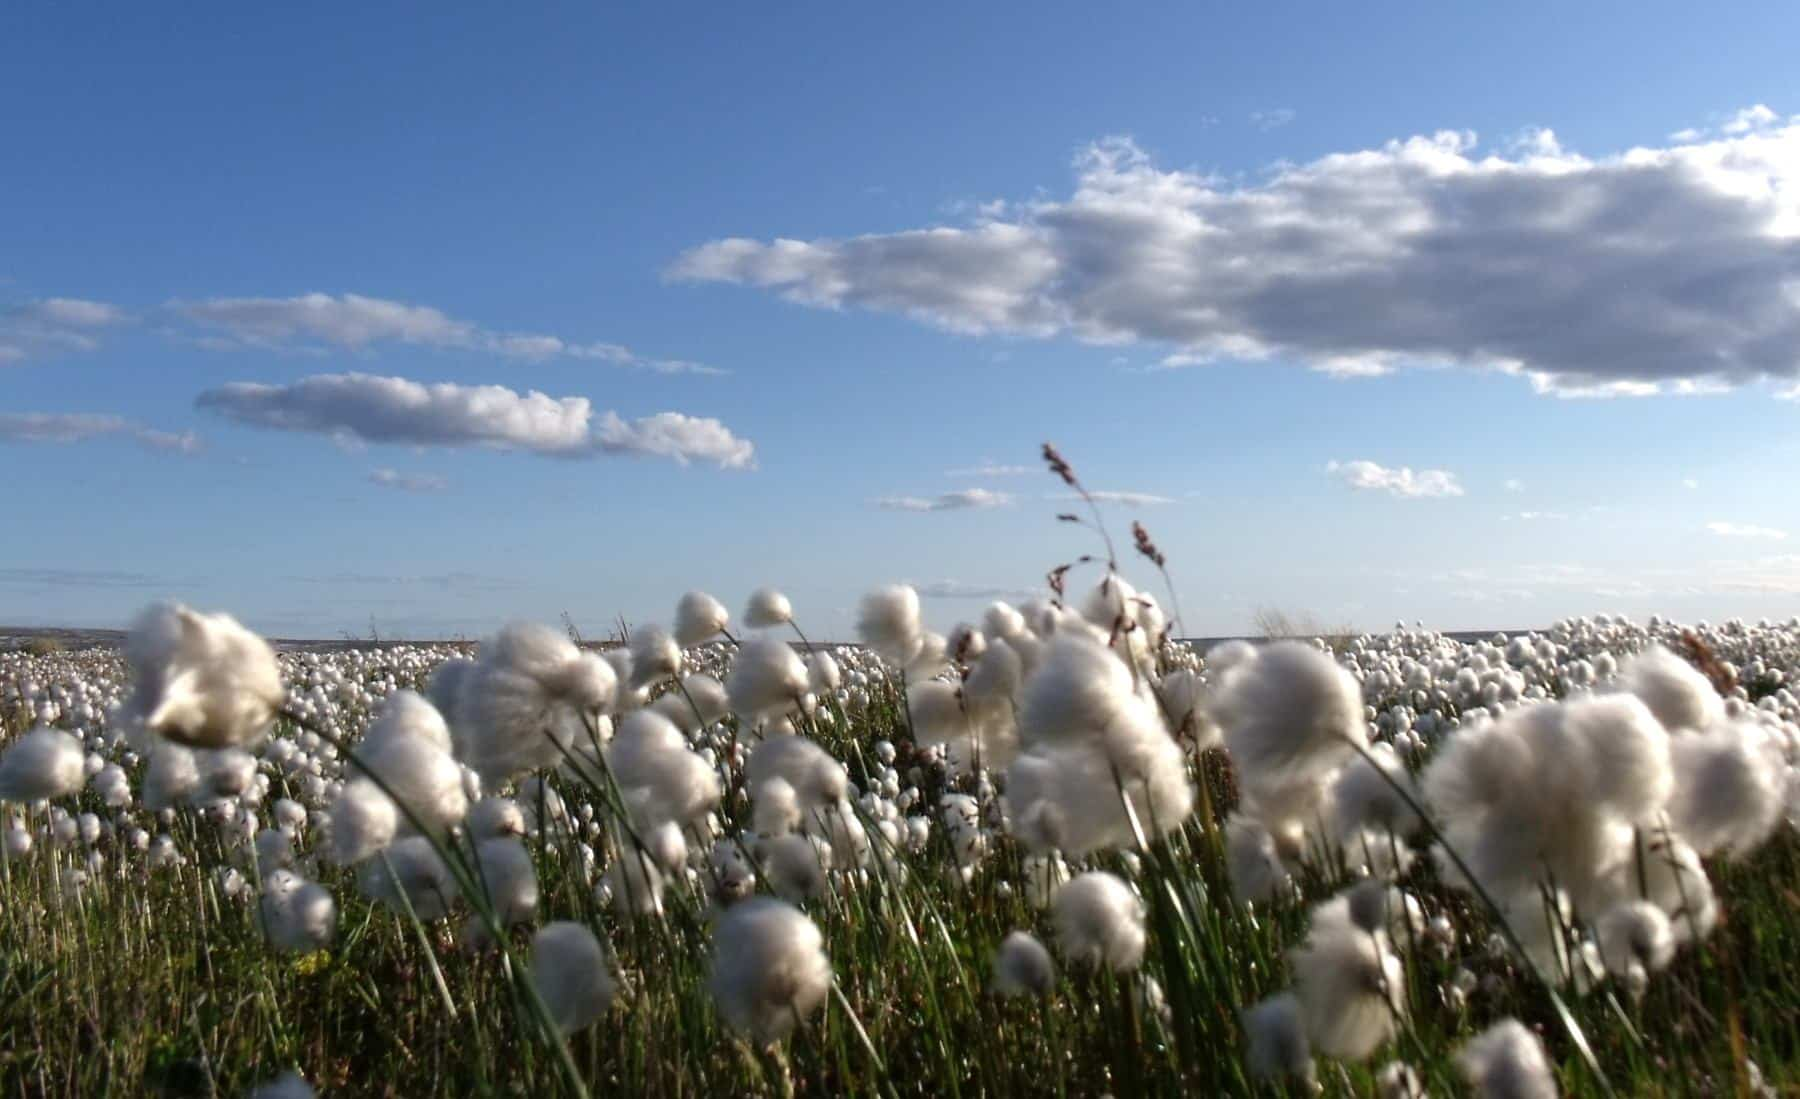 Cotton Fields in the Southeast. Fertilizer for Cotton Production in the South.